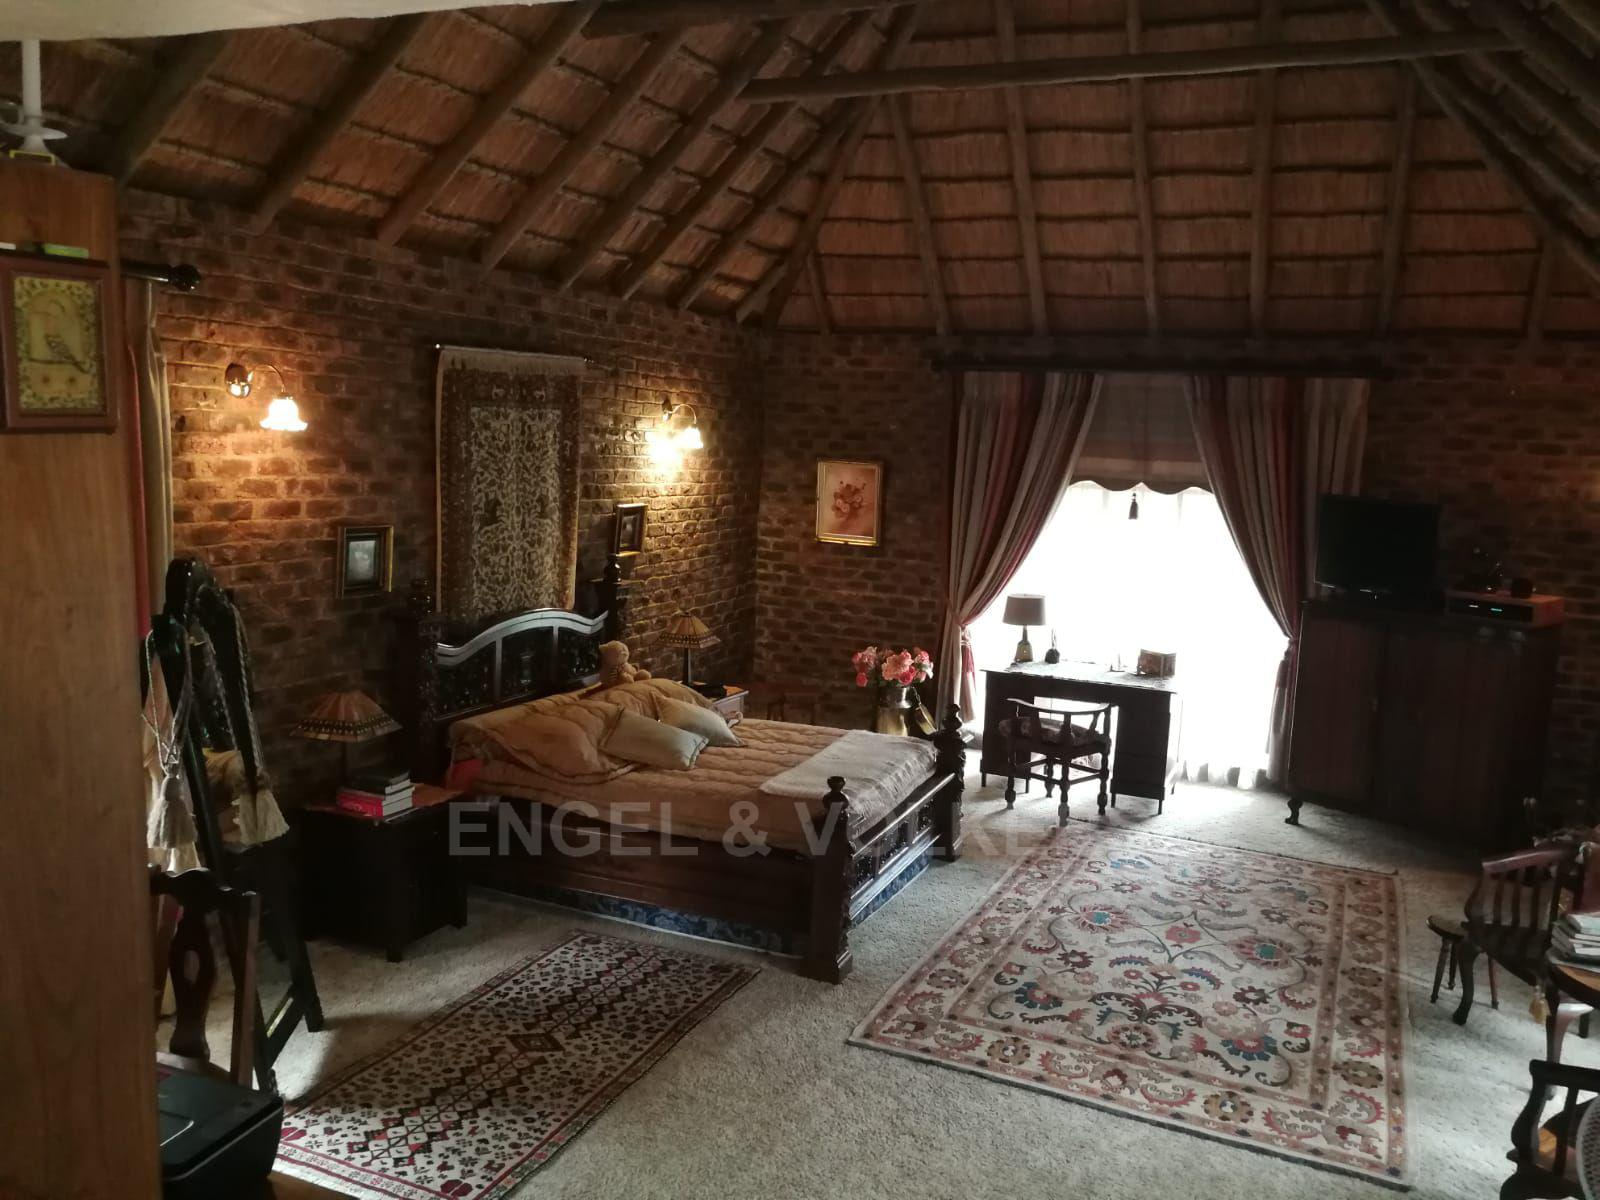 Land in Hartbeespoort Dam Area - Wonderfully large main bedroom